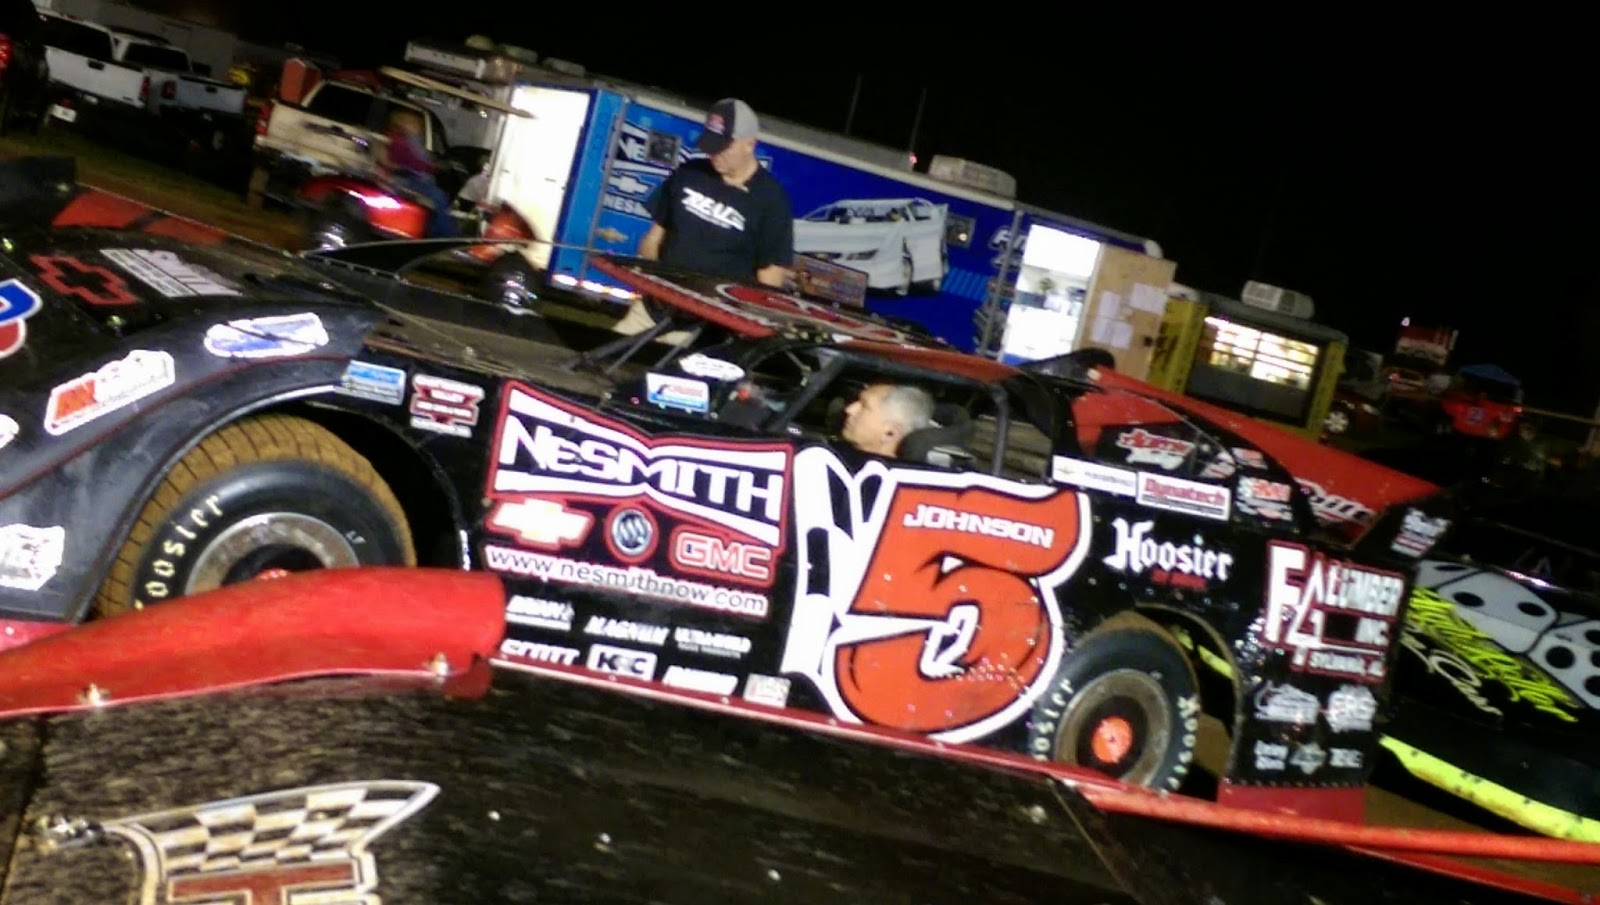 National Dirt Late Model Hall of Fame Member and NeSmith Reigning Champion, Ronnie Johnson